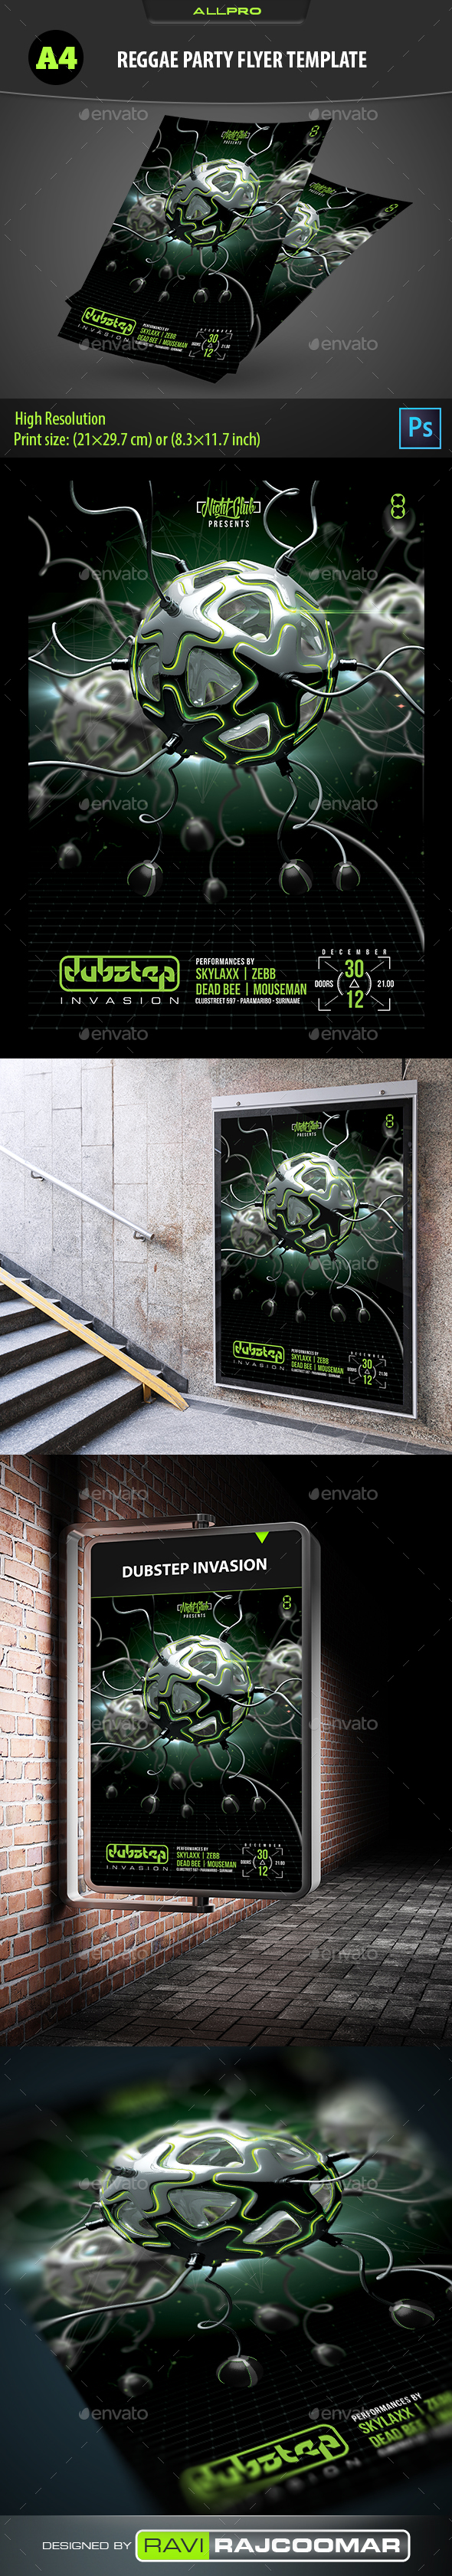 Dubstep Invasion Flyer Template - Events Flyers